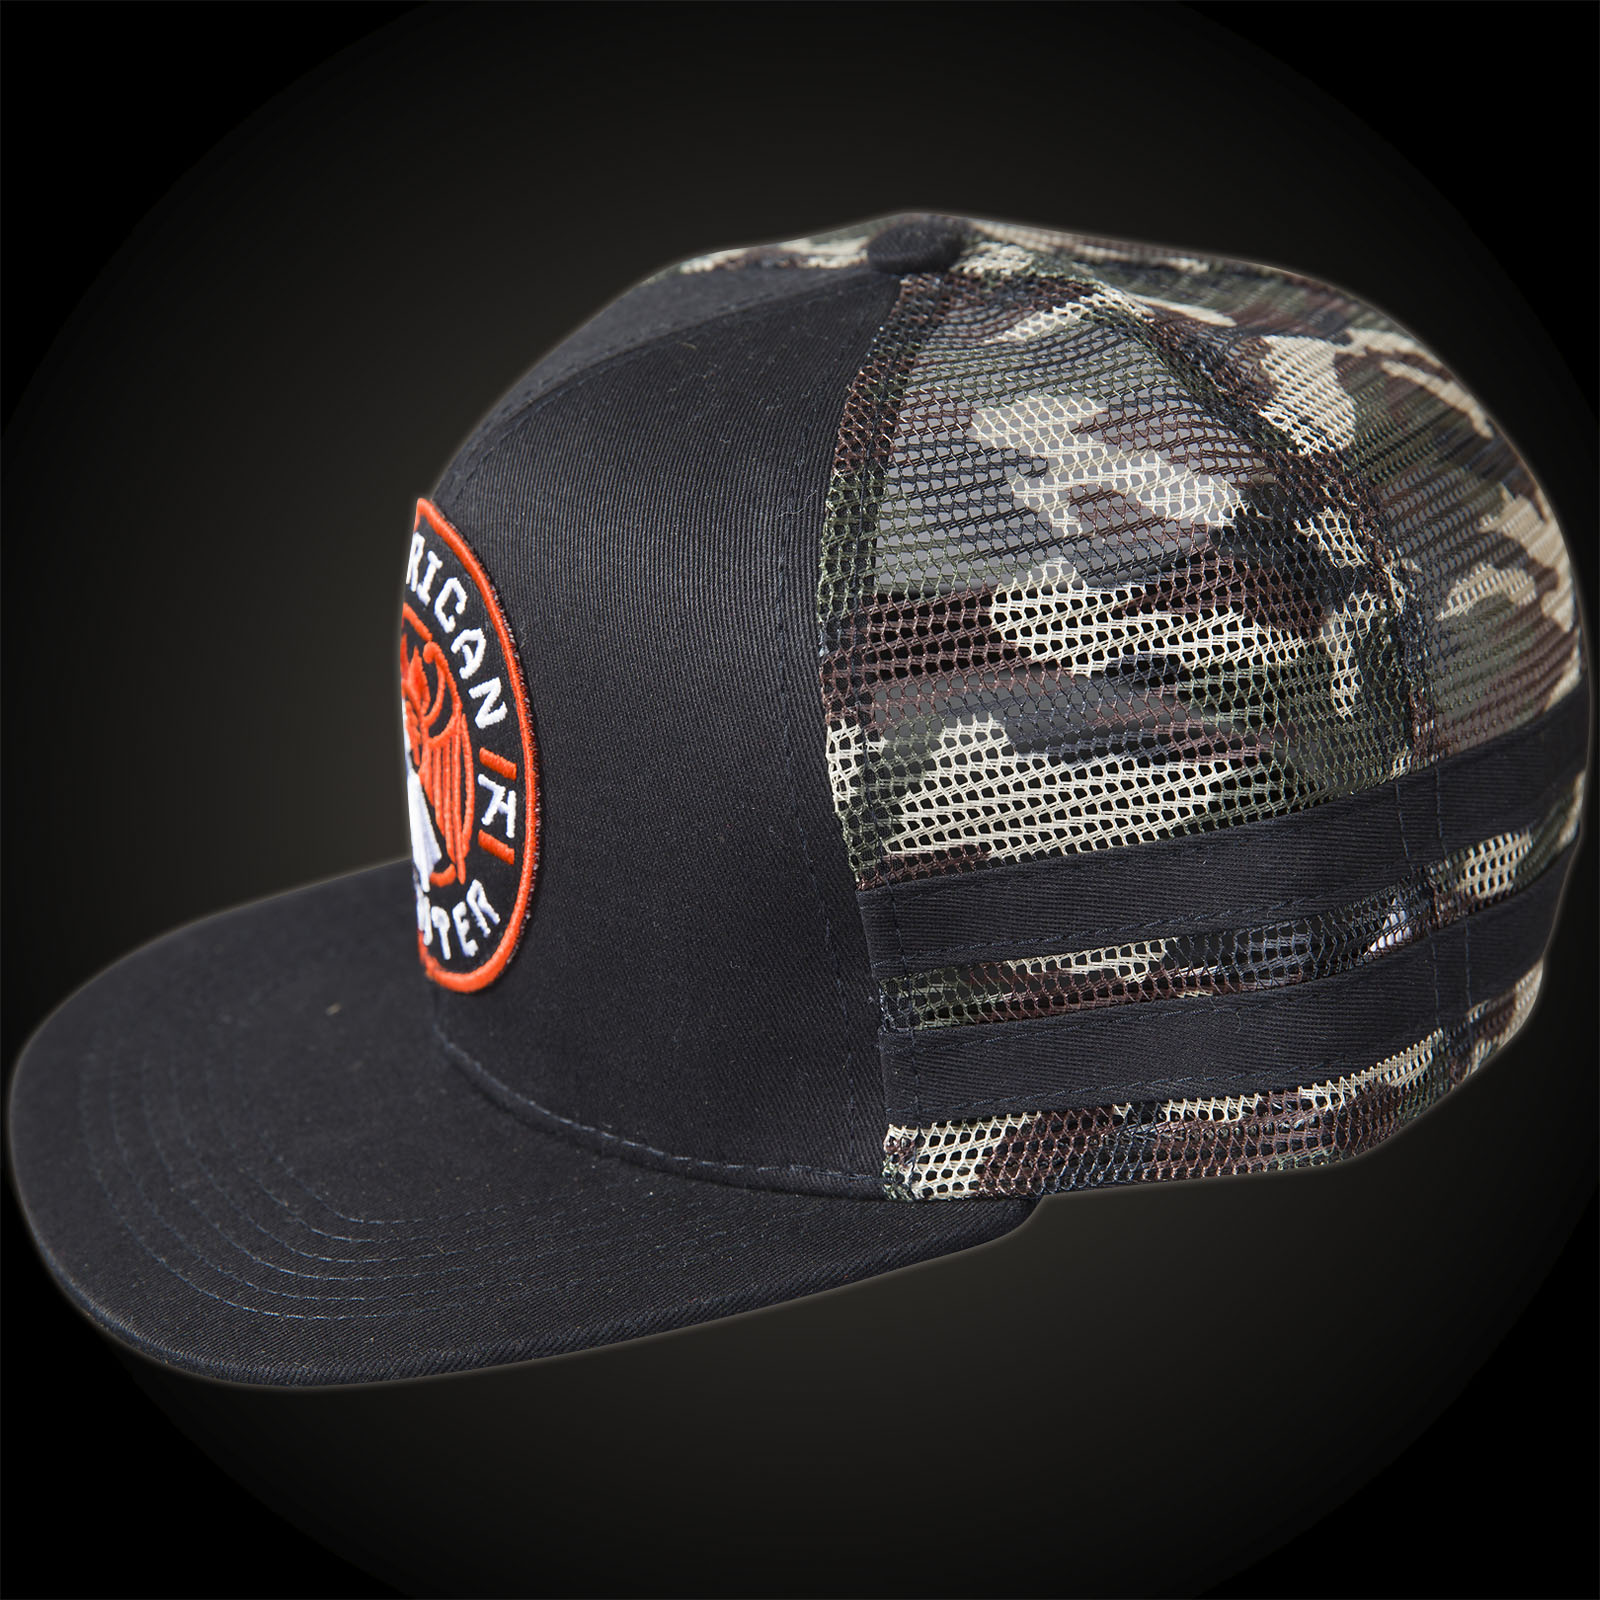 a4f8e5f2 ... American Fighter by Affliction Fisher Hat Black/Camouflage ...